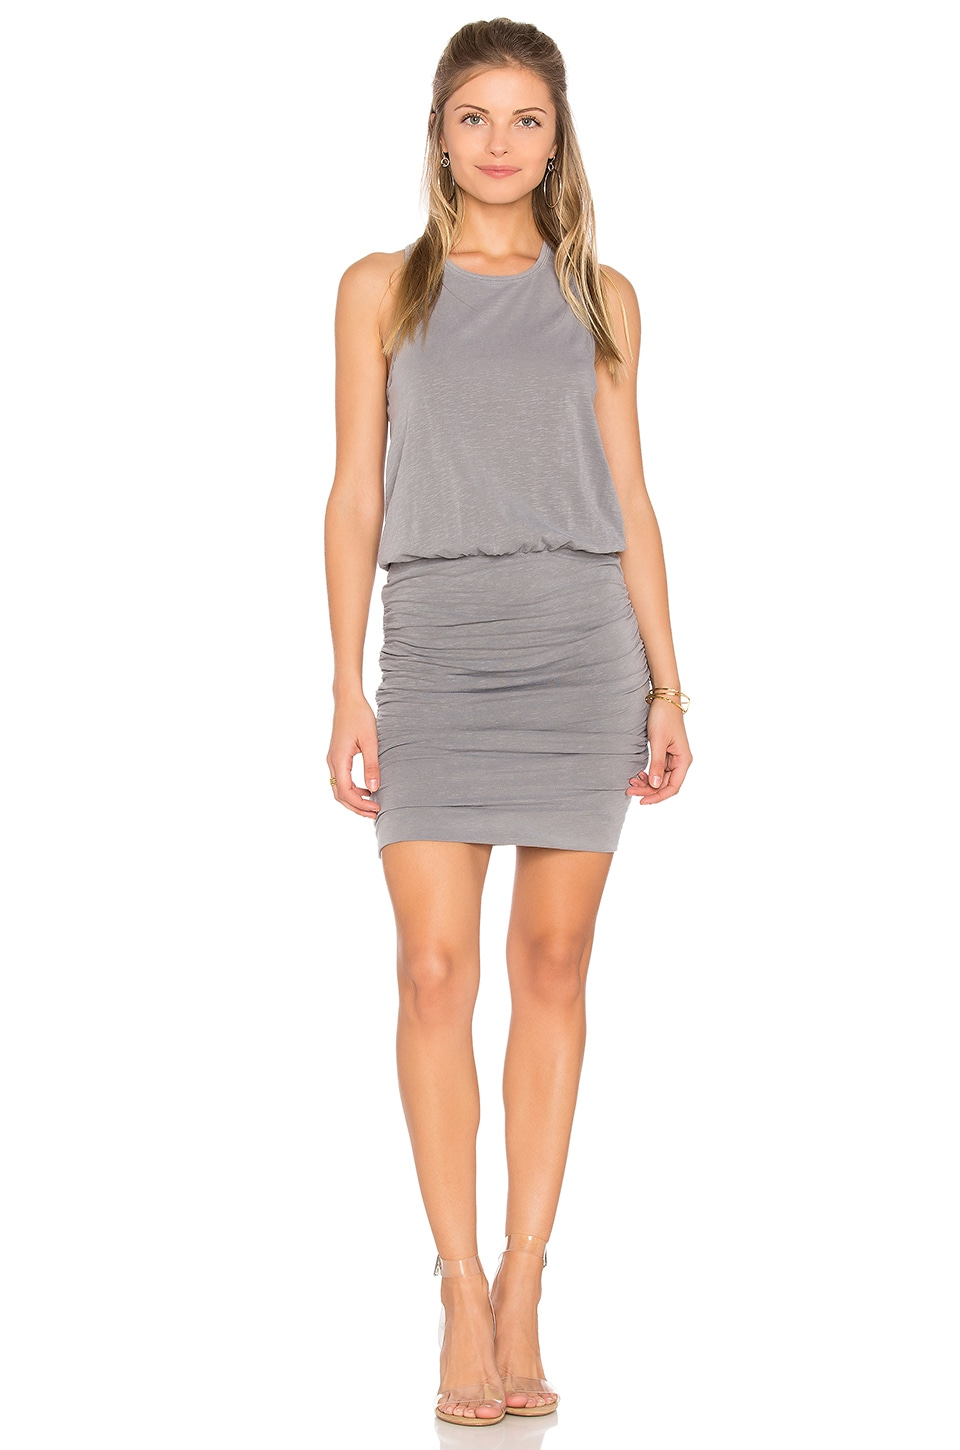 SUNDRY Ruched Tank Dress in Pigment Olive